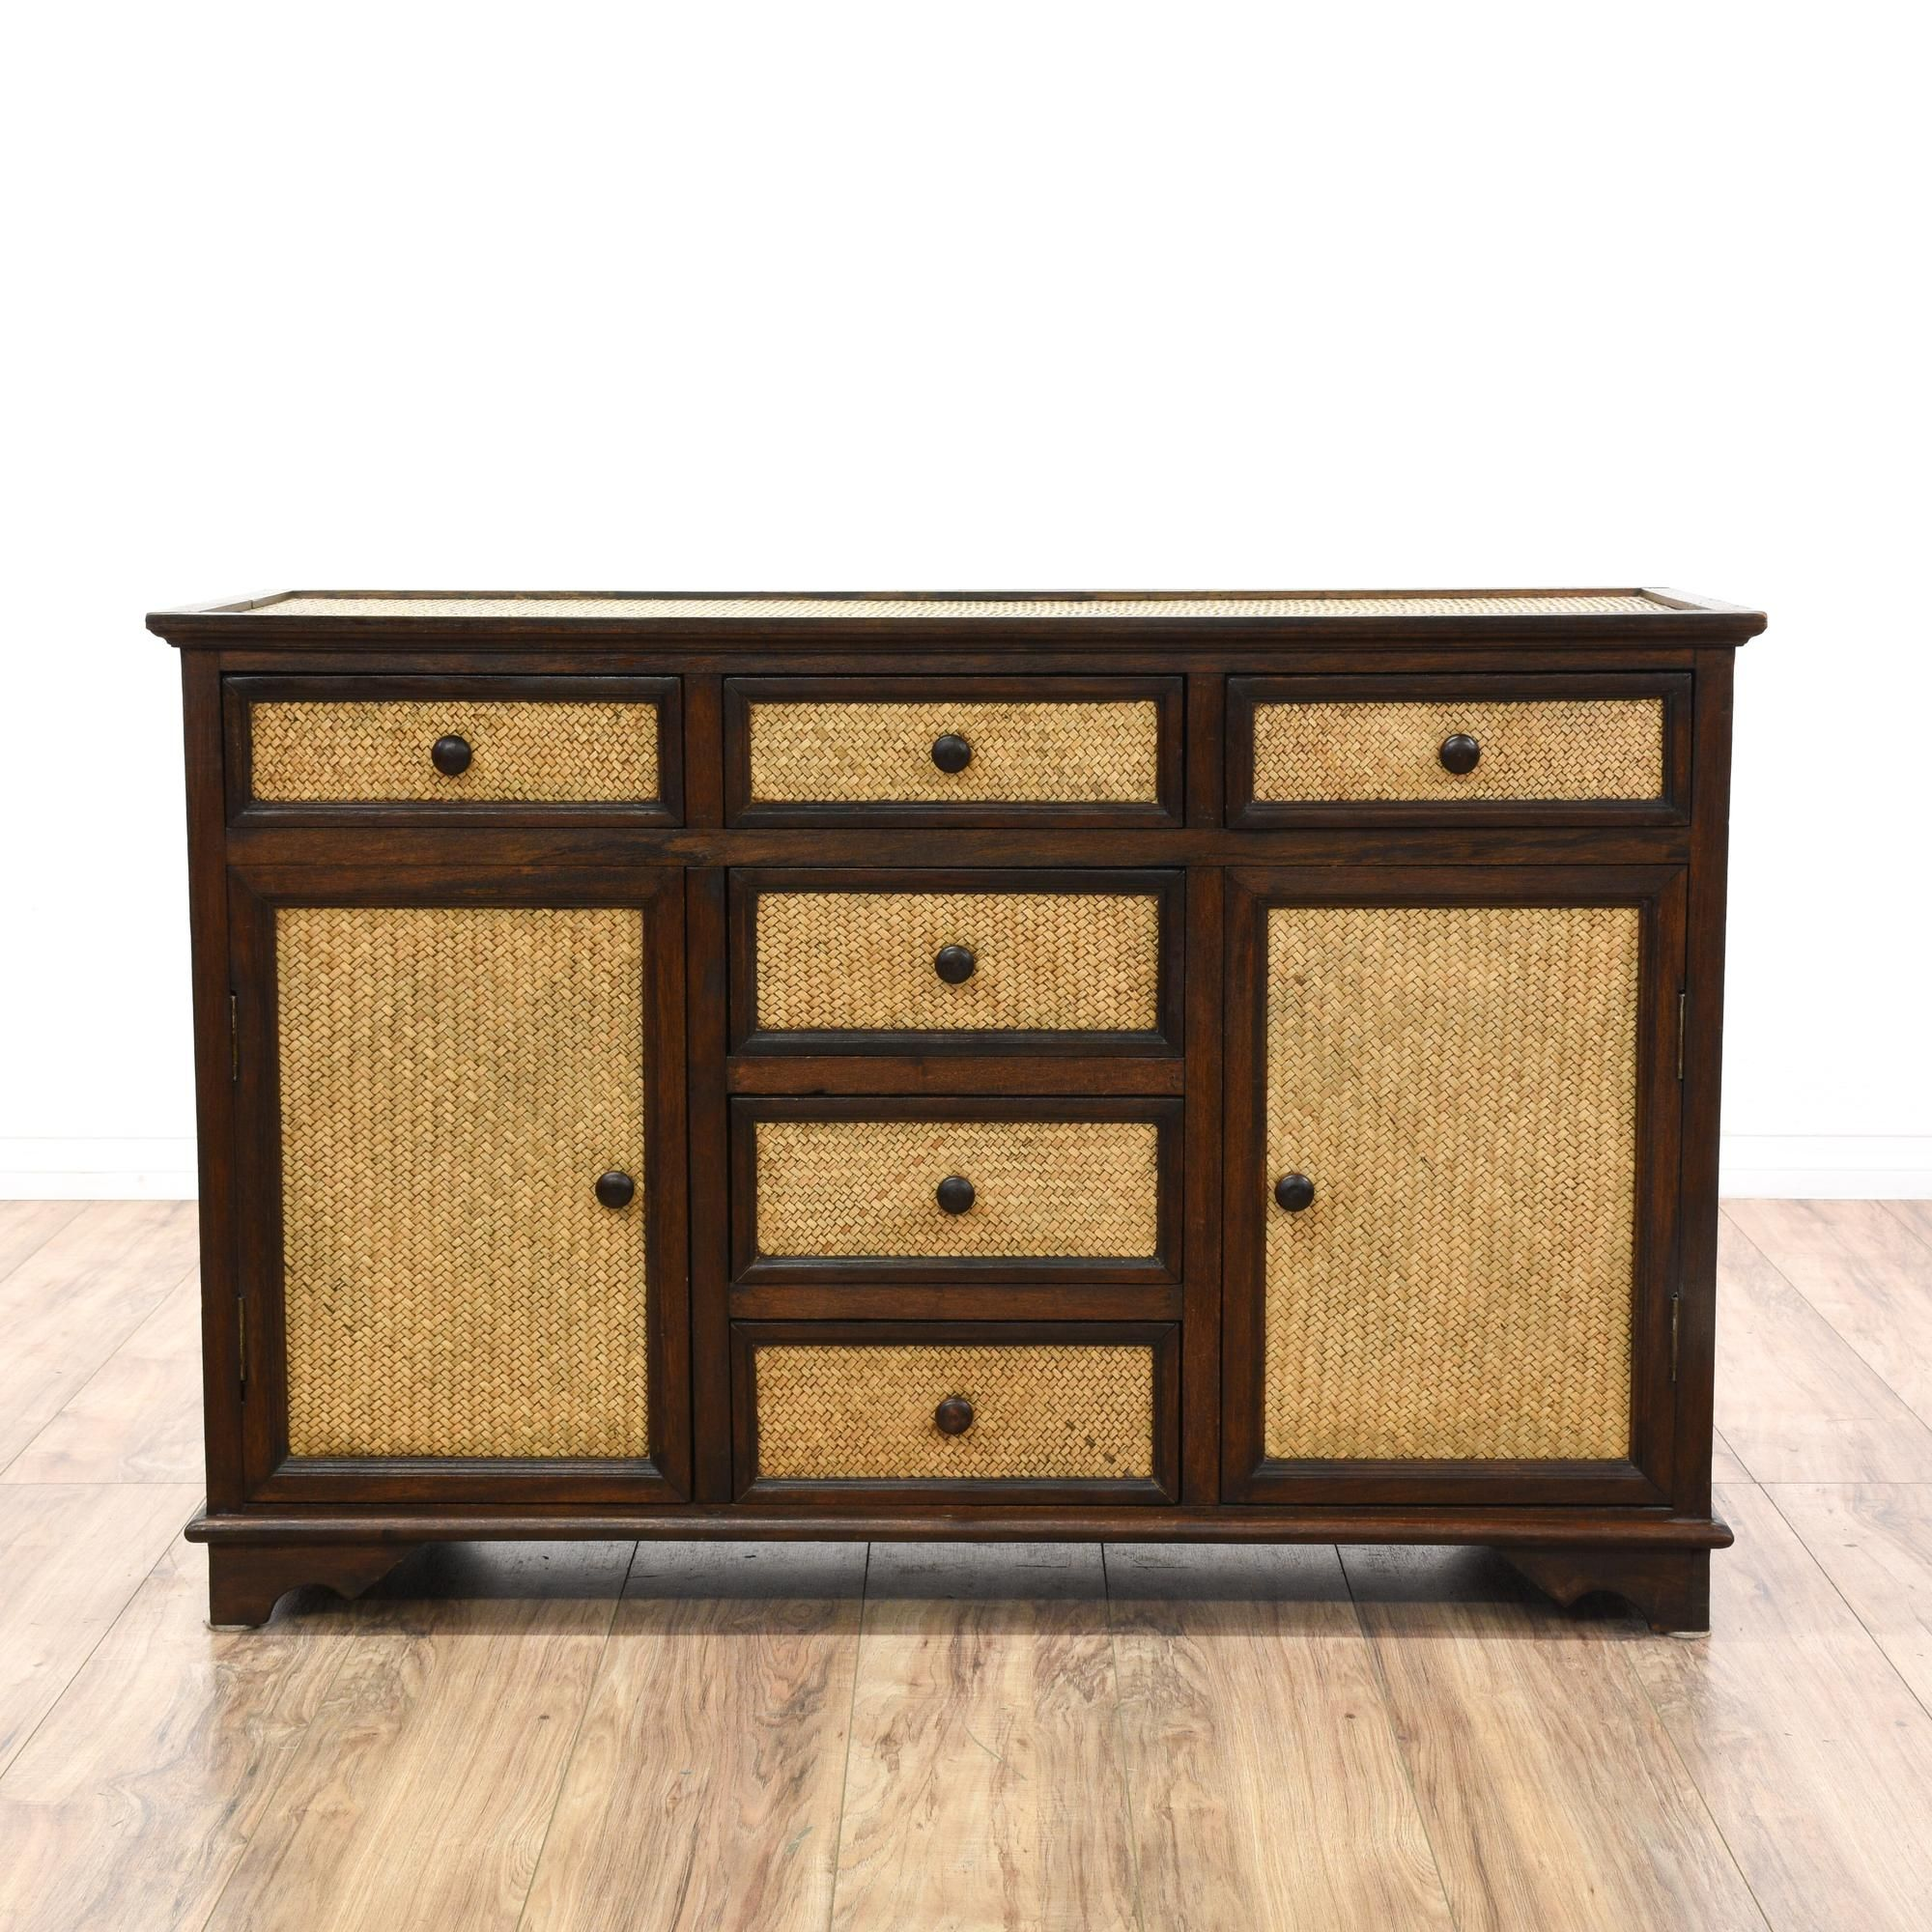 This buffet is featured in a solid wood with a glossy rosewood ...